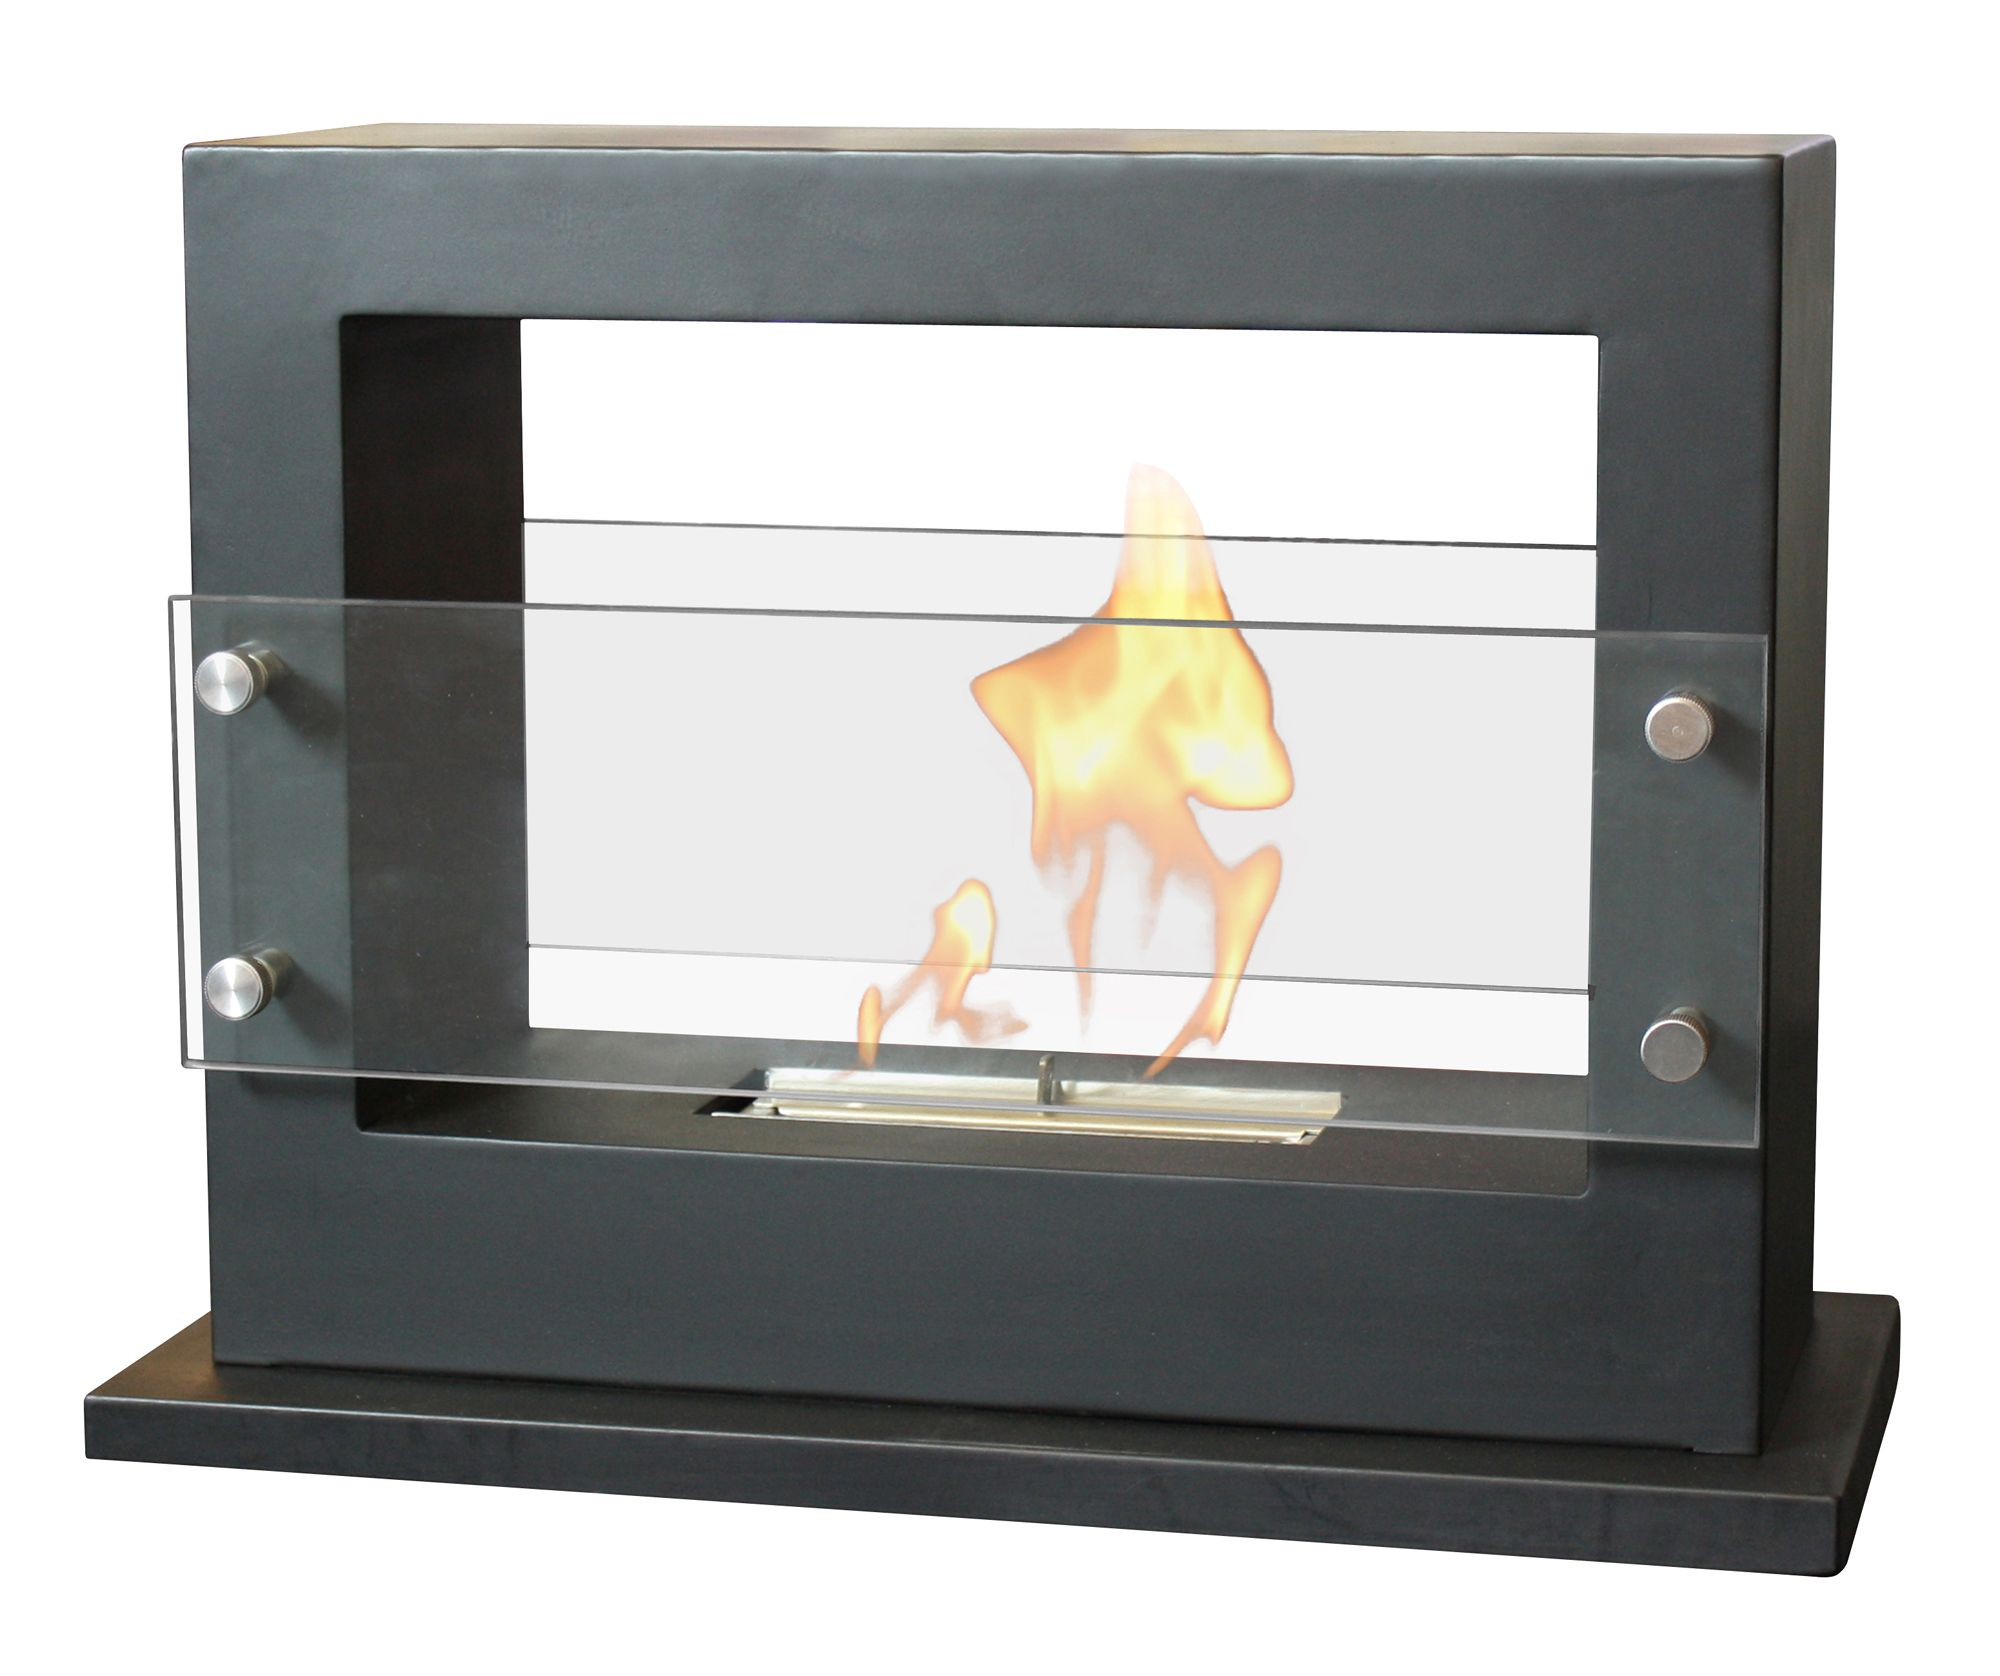 Merdia Bioethanol Portable Fire - B&Q for all your home and garden supplies and advice on all the latest DIY trends